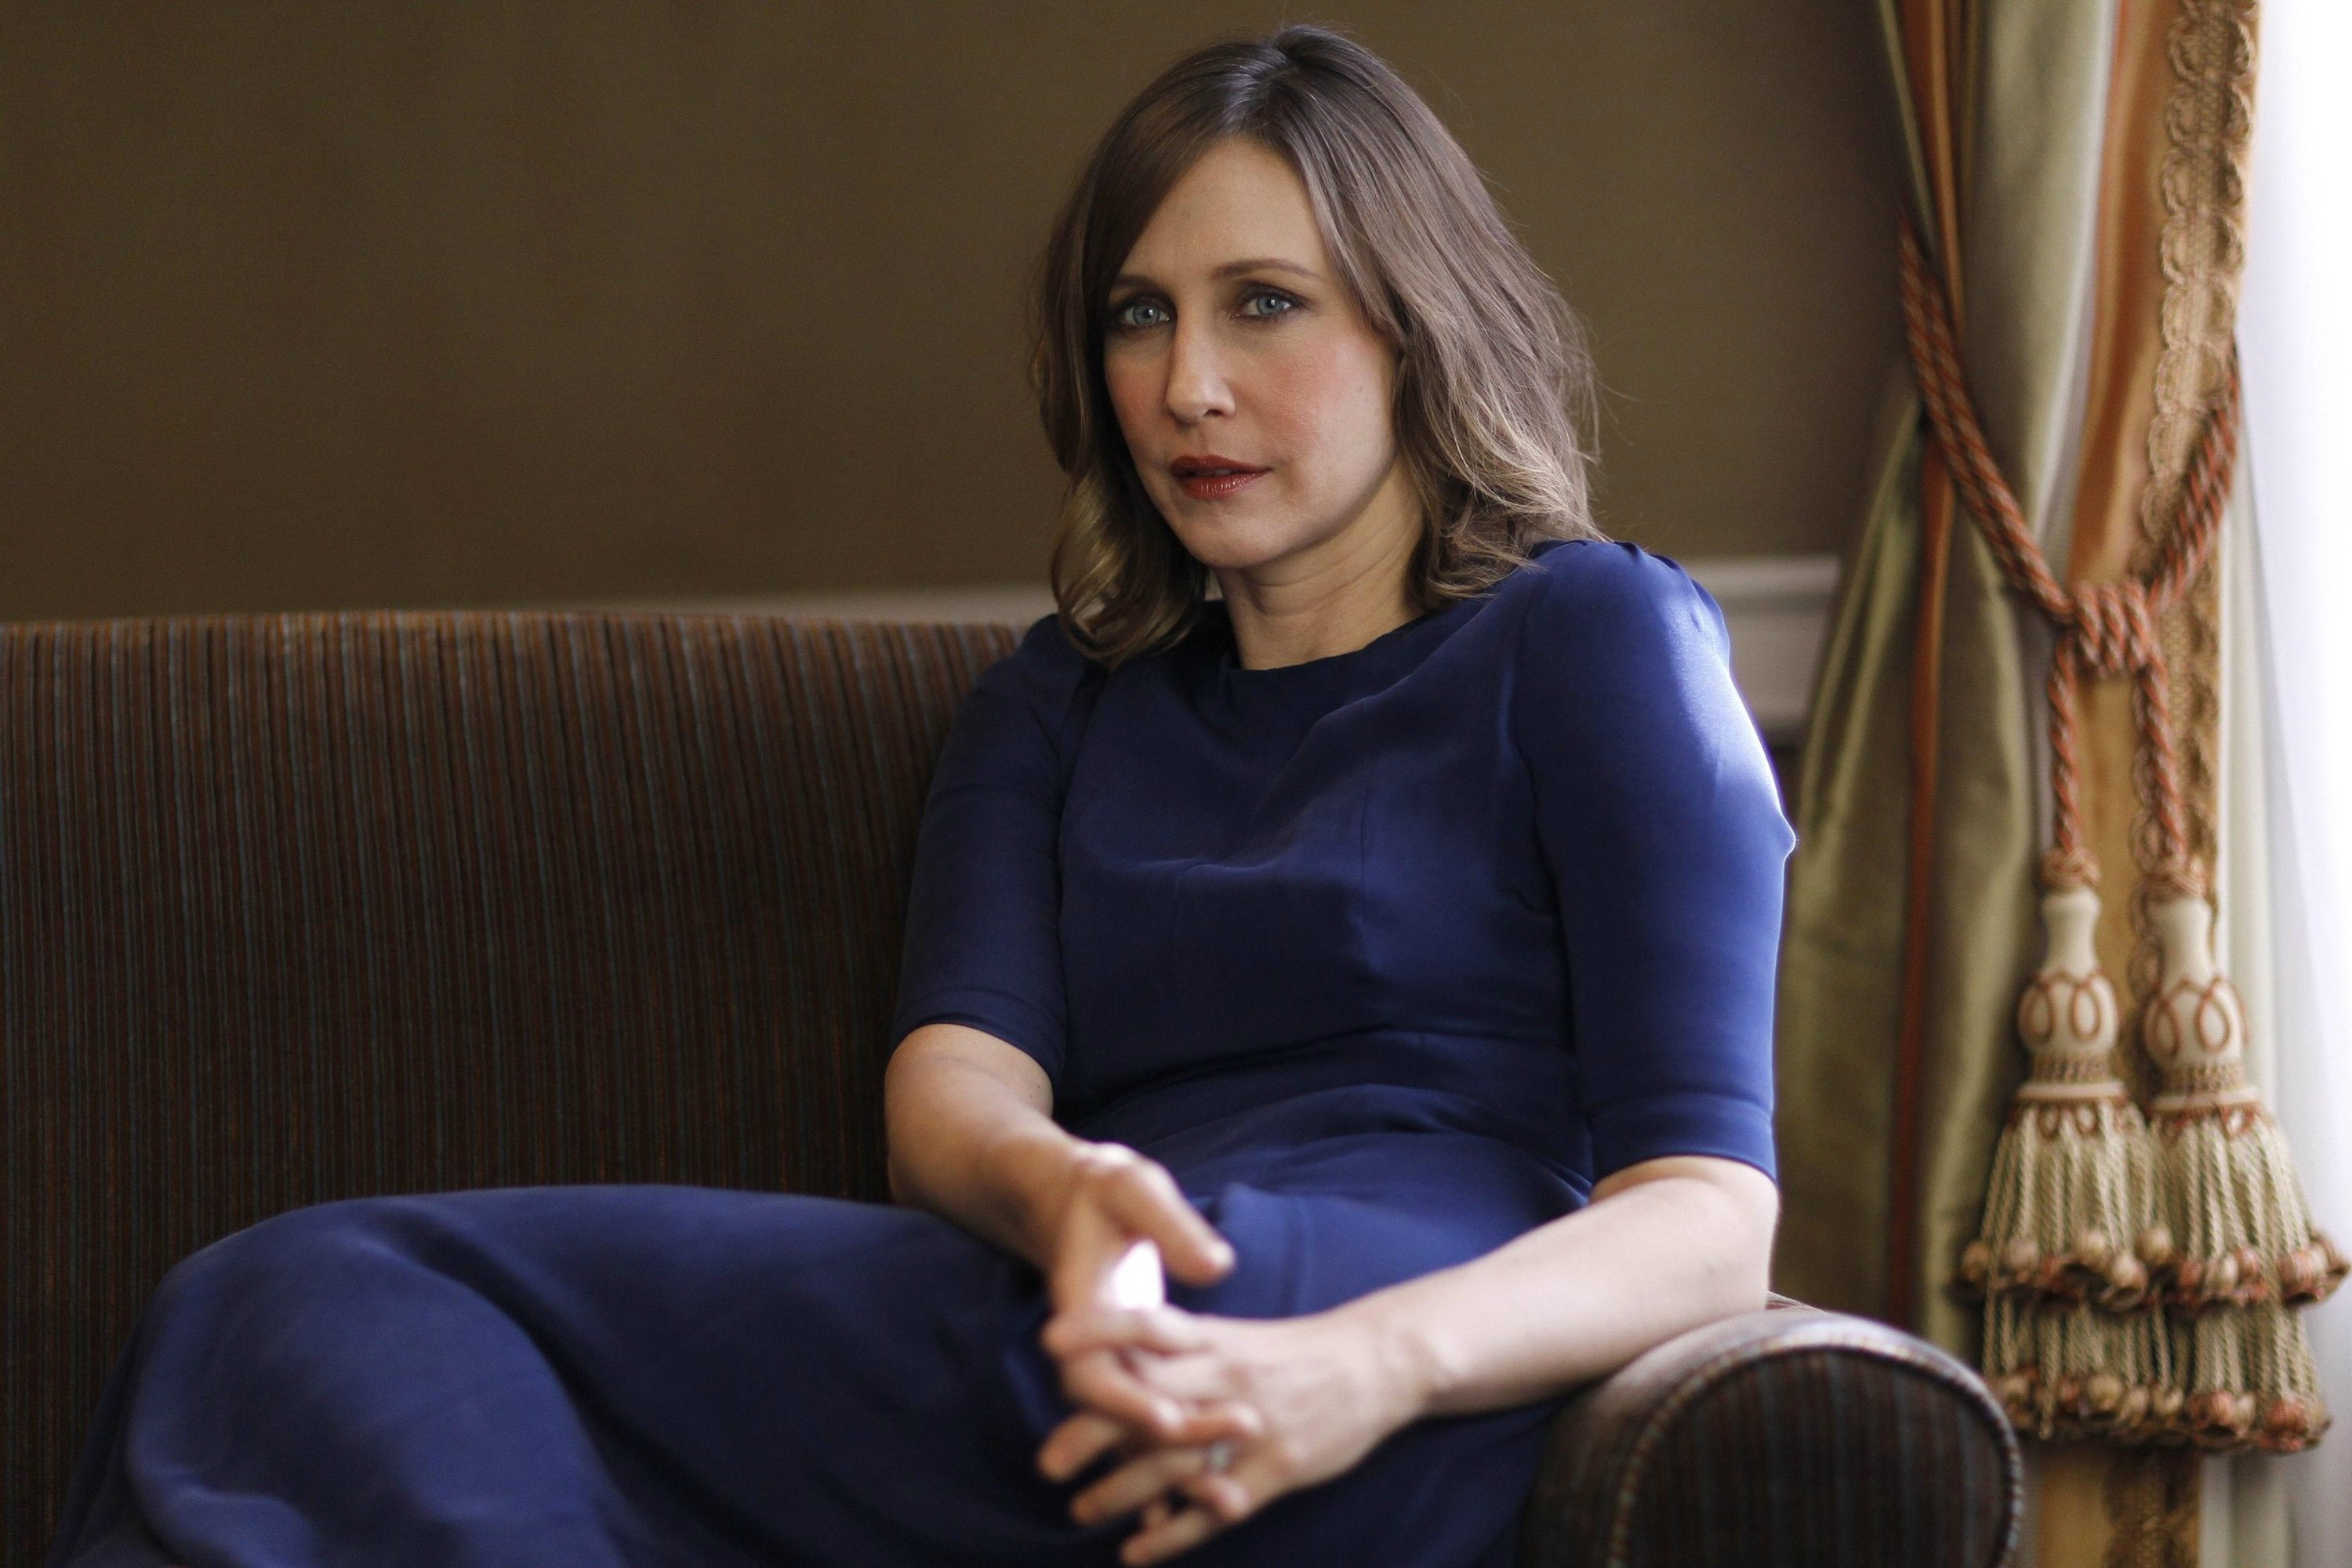 vera farmiga wallpaper background 382